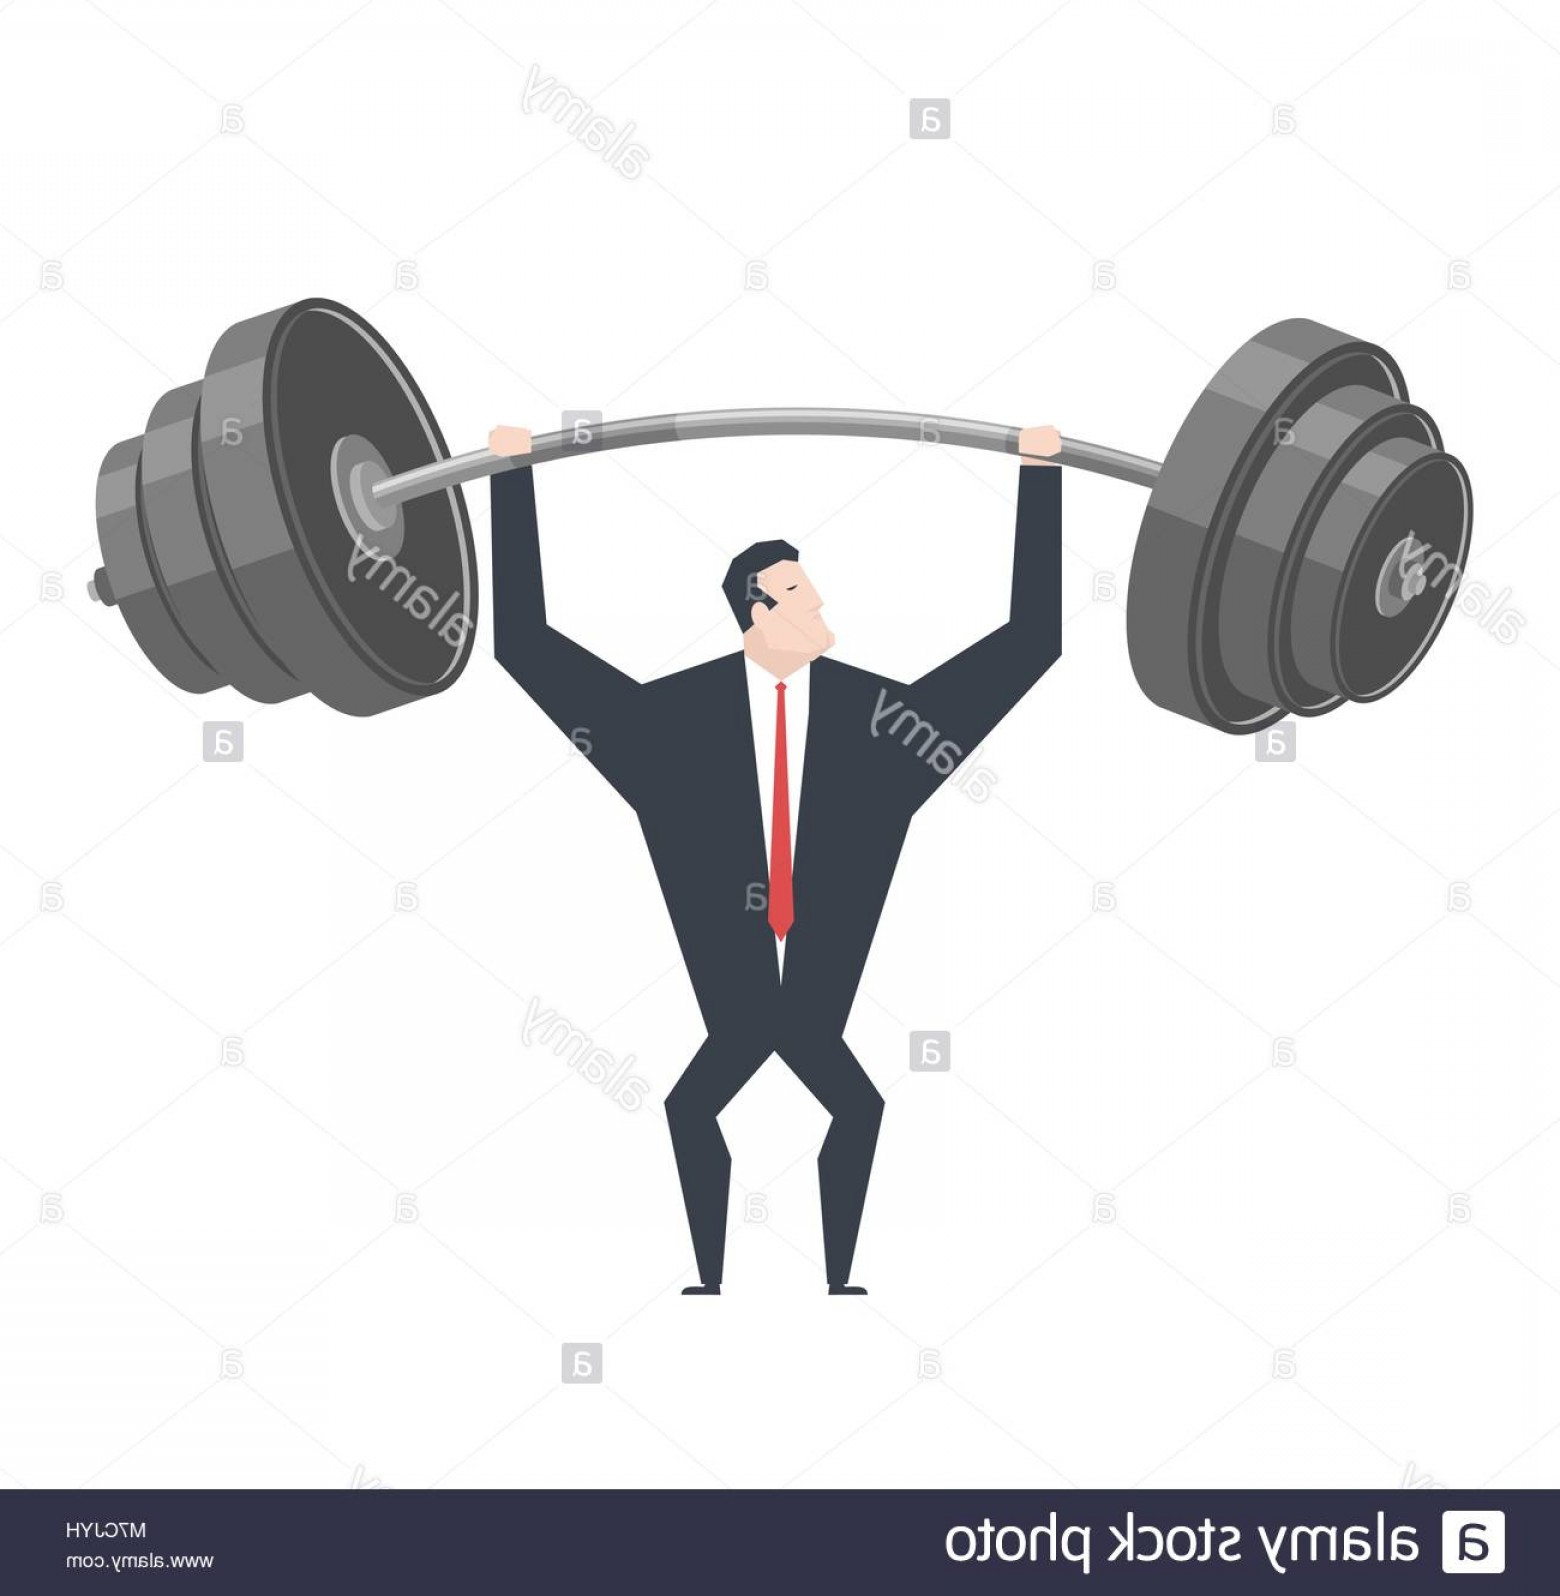 Weightlifter Vector Art: Stock Photo Businessman Lifts Weights Boss Is Weightlifter Office Life Vector